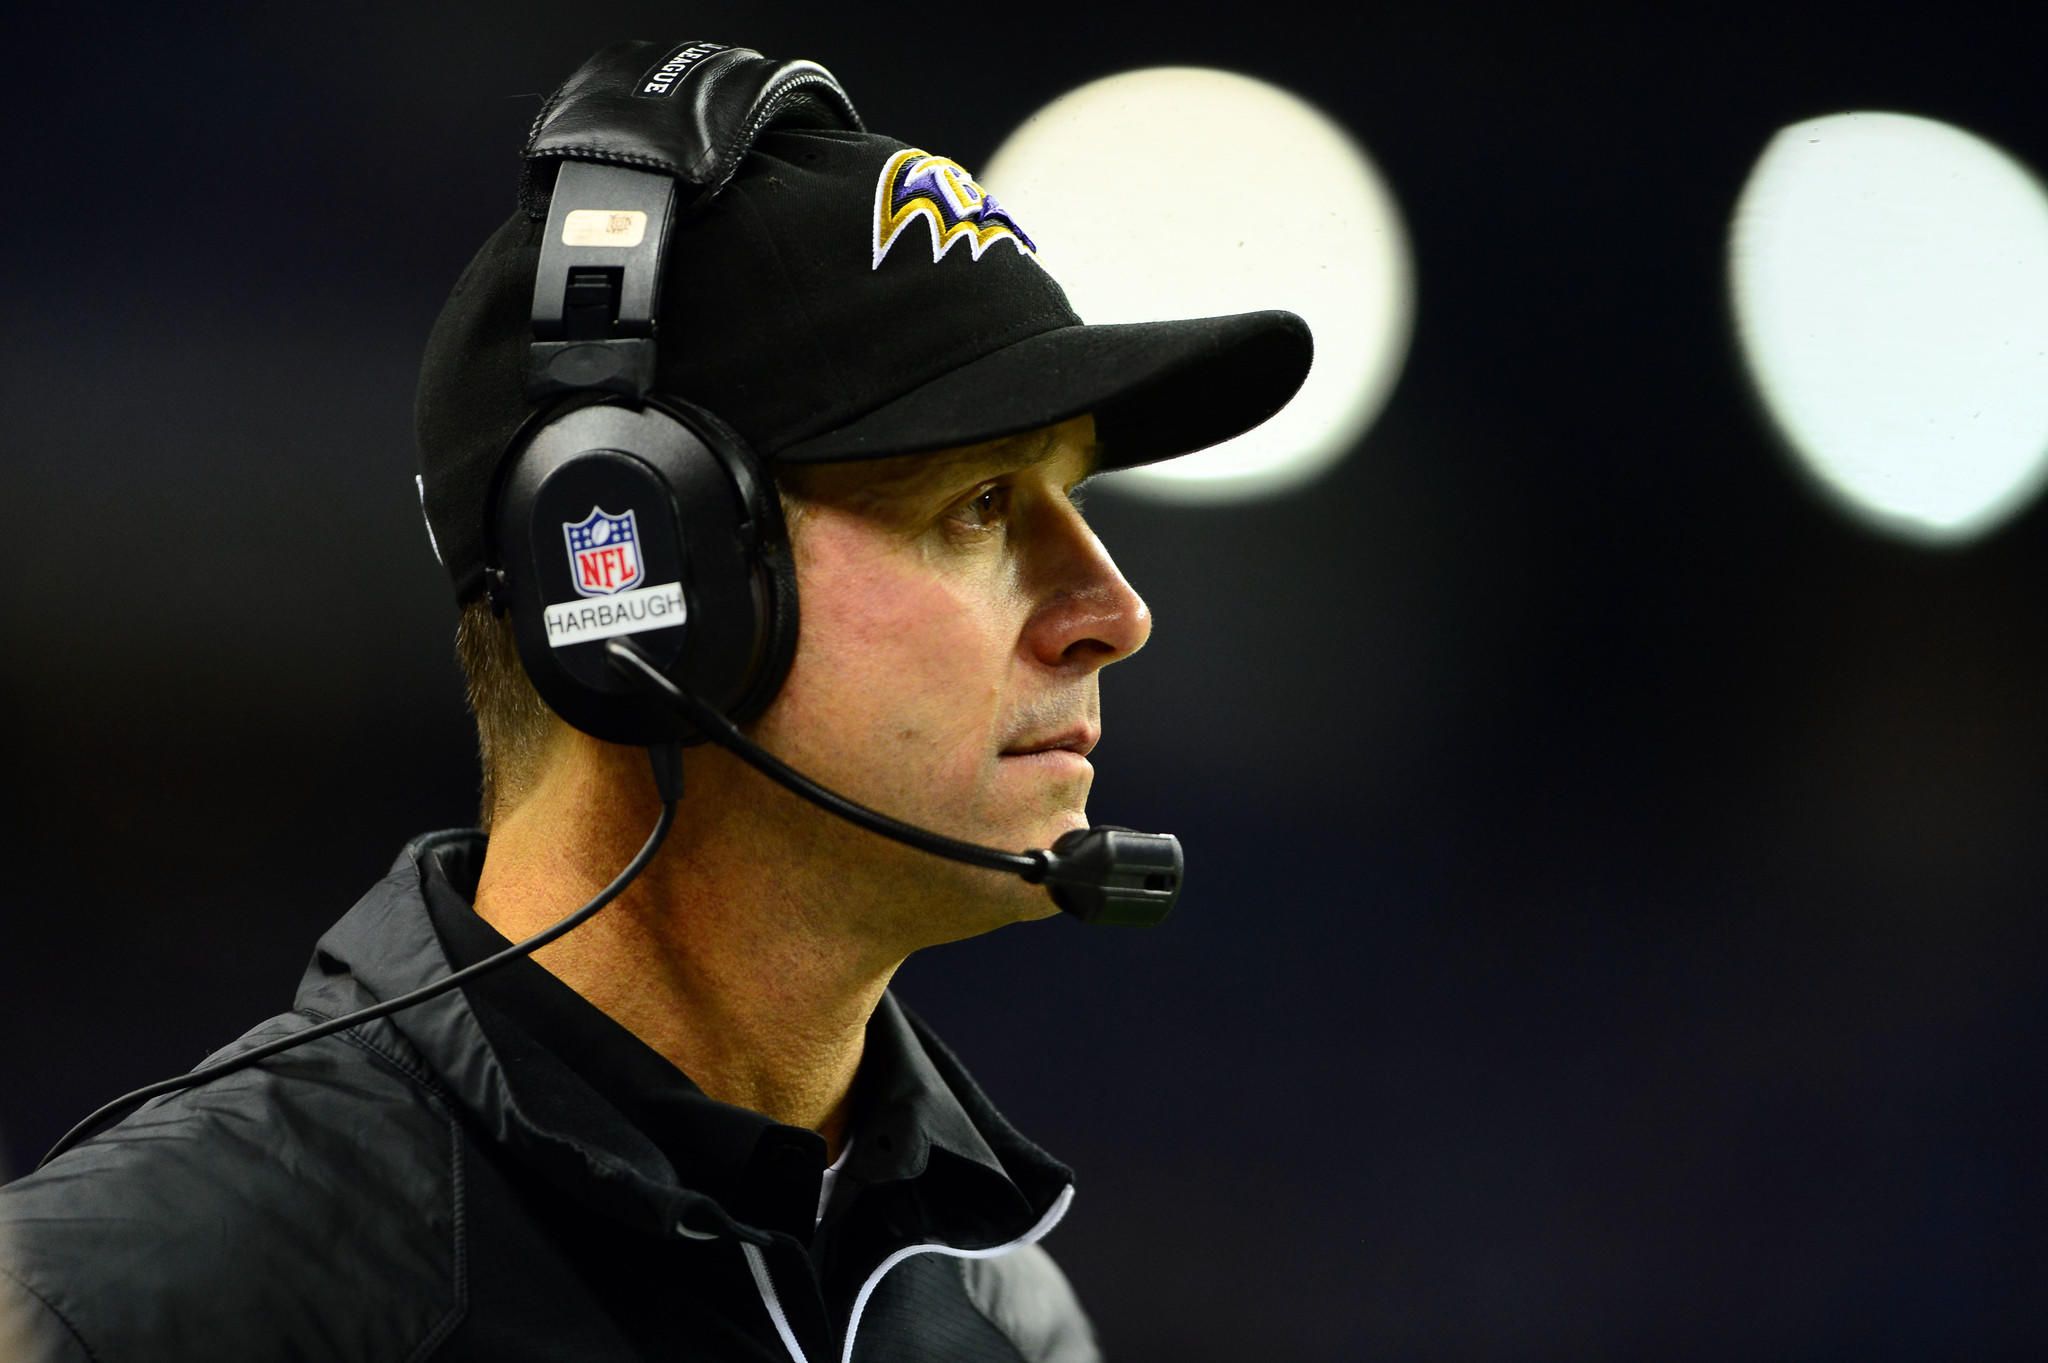 Ravens coach John Harbaugh on the sidelines as the Ravens faced the Detroit Lions in December.